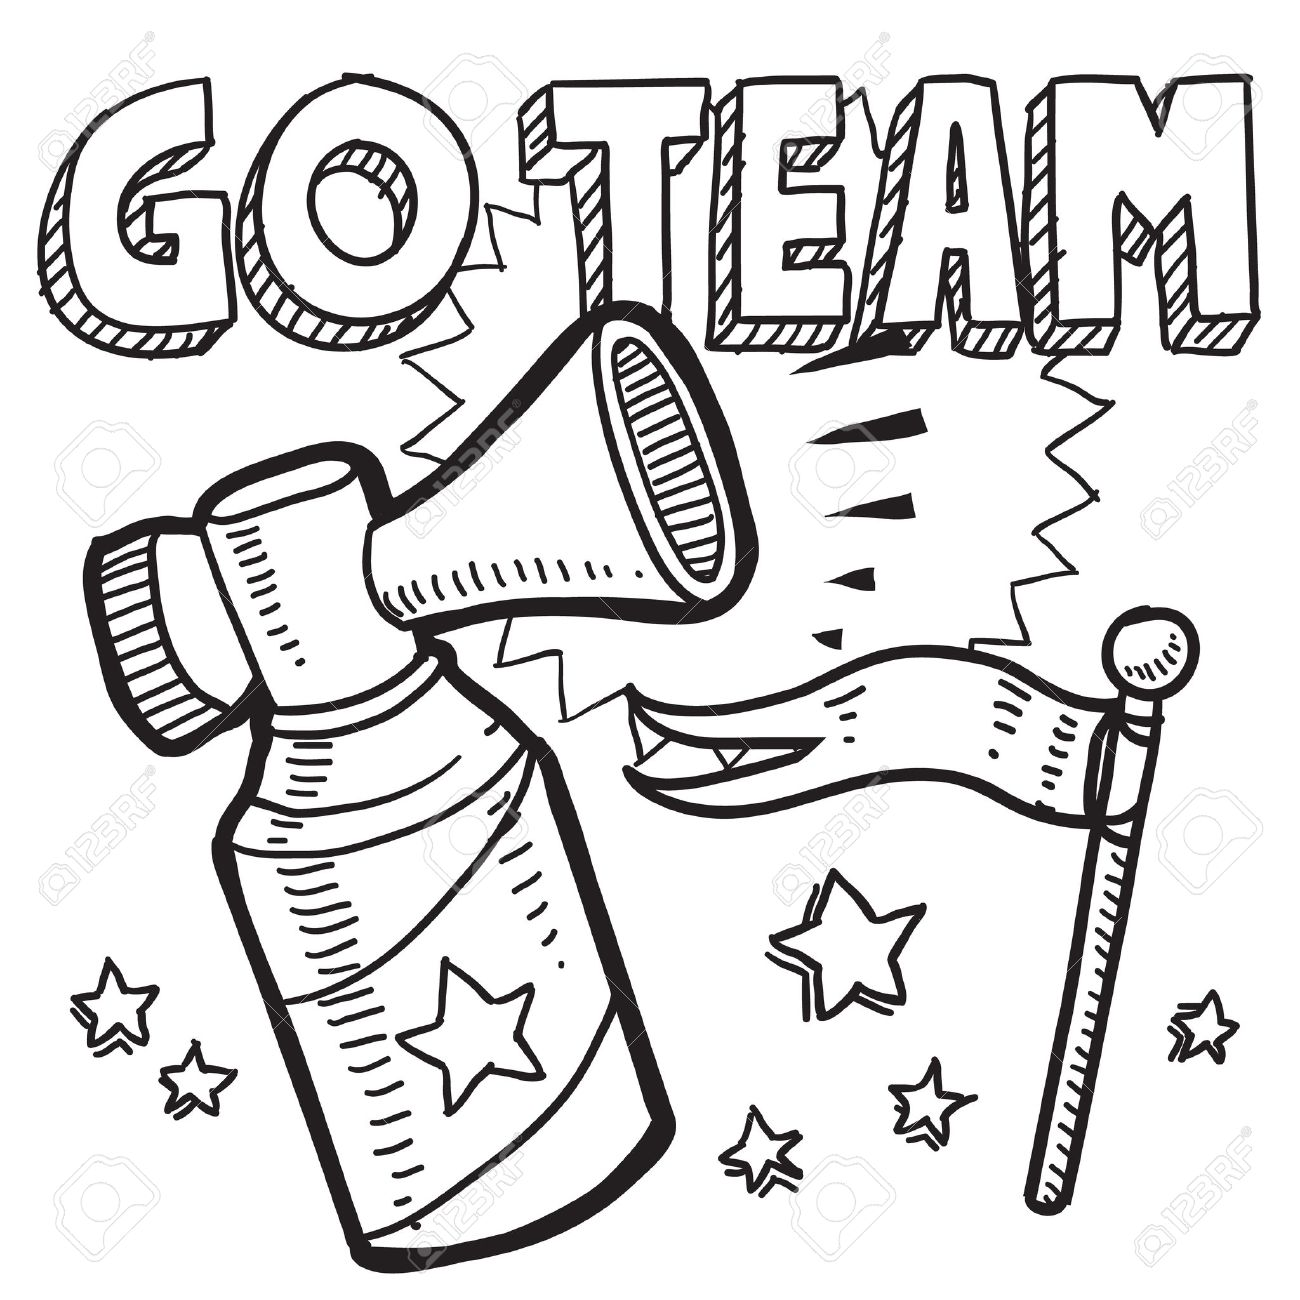 Go Team Black And White Clipart #1